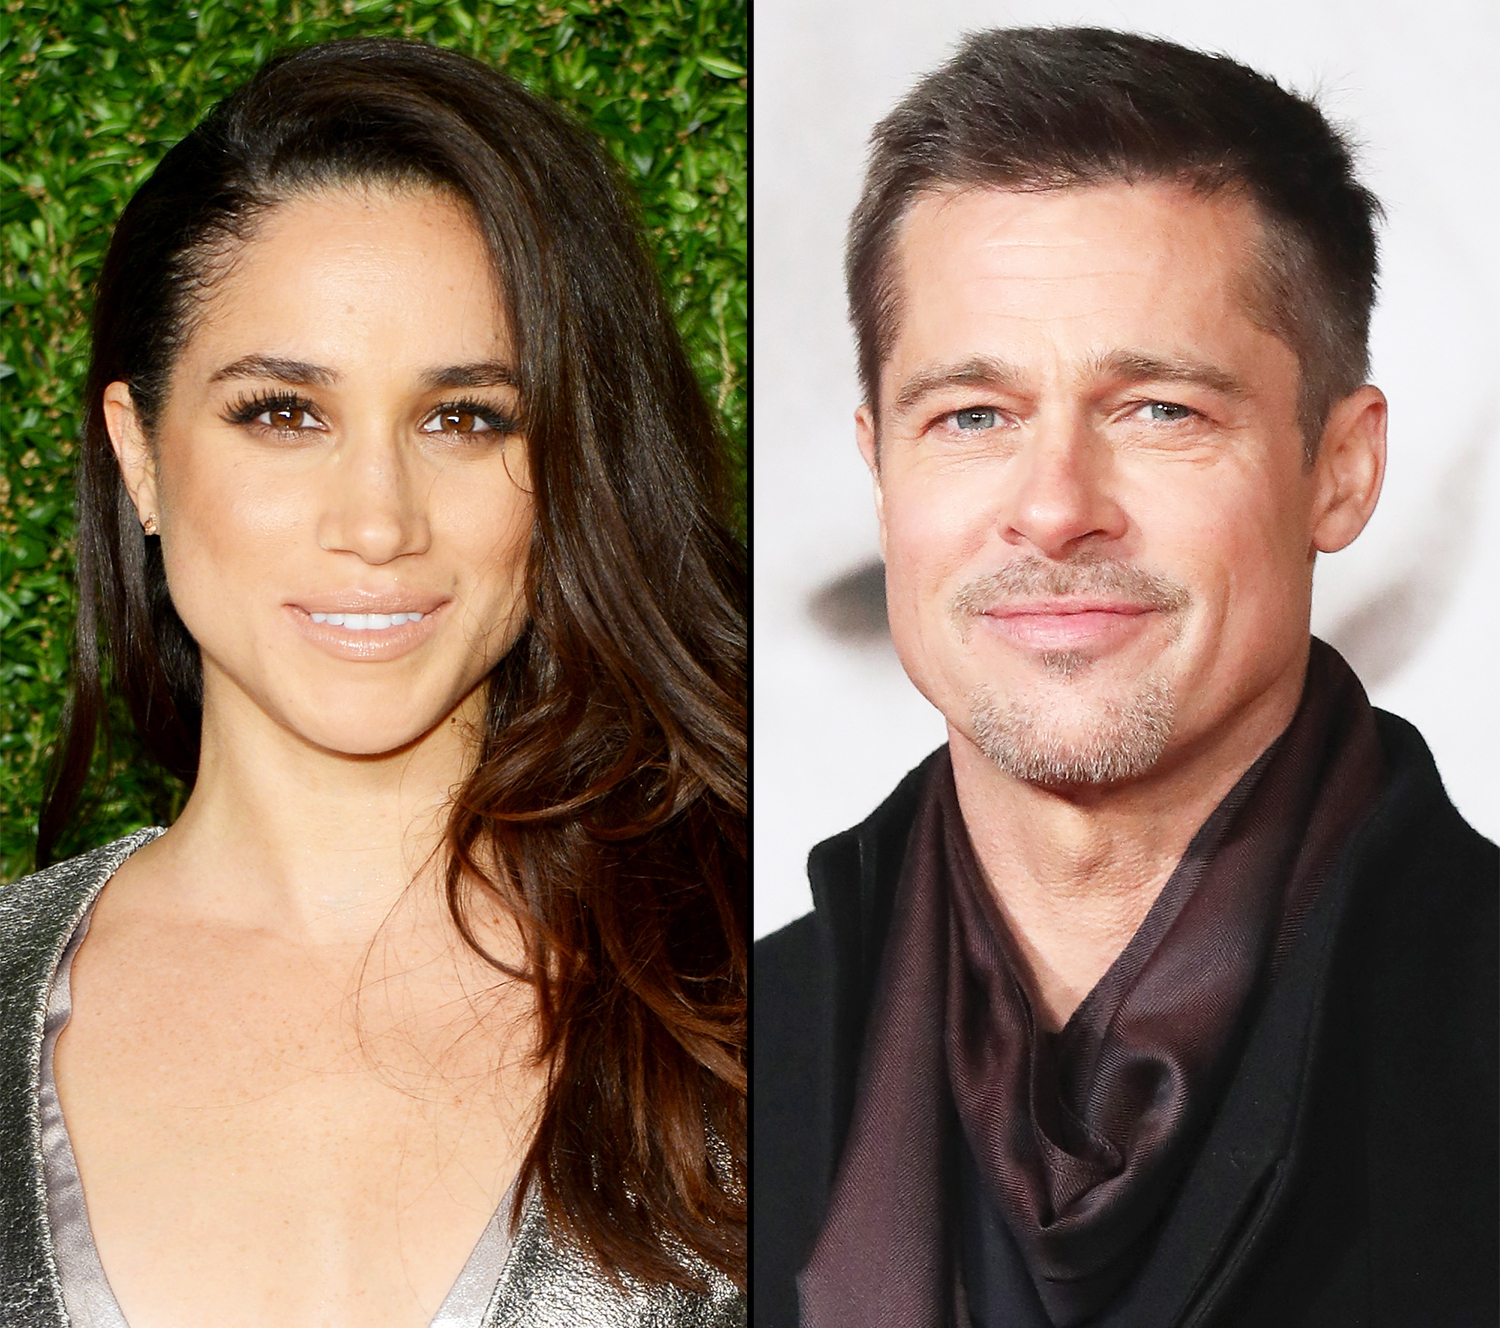 Meghan Markle and Brad Pitt